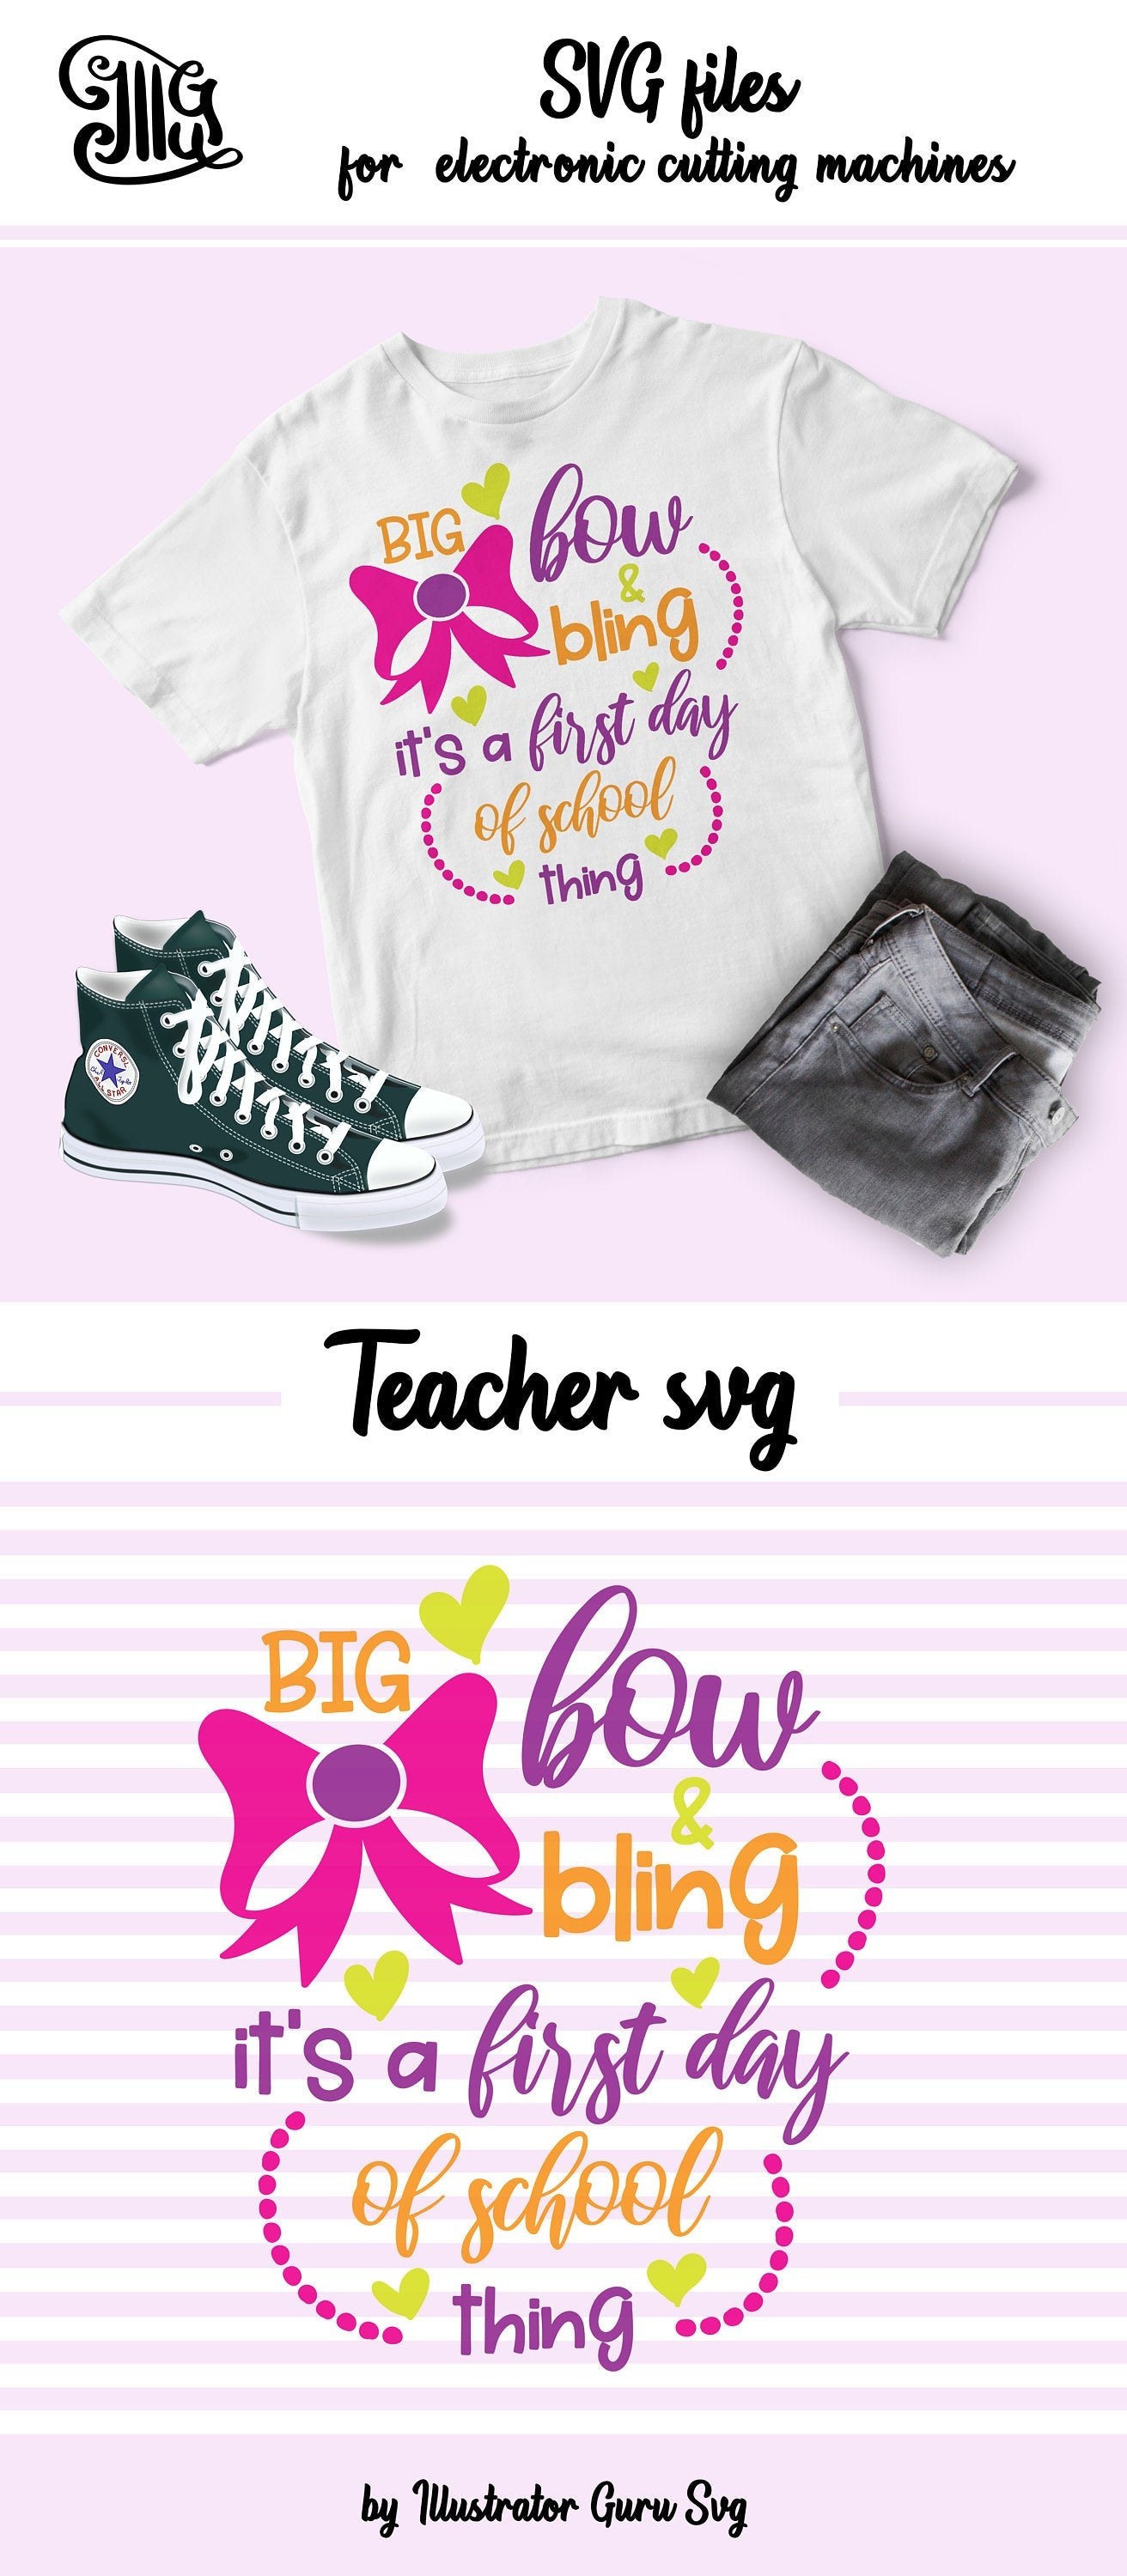 Big bow and bling it's a first day of school thing SVG, school svg, school girl shirt svg, school shirt svg, first day of school svg,-by Illustrator Guru